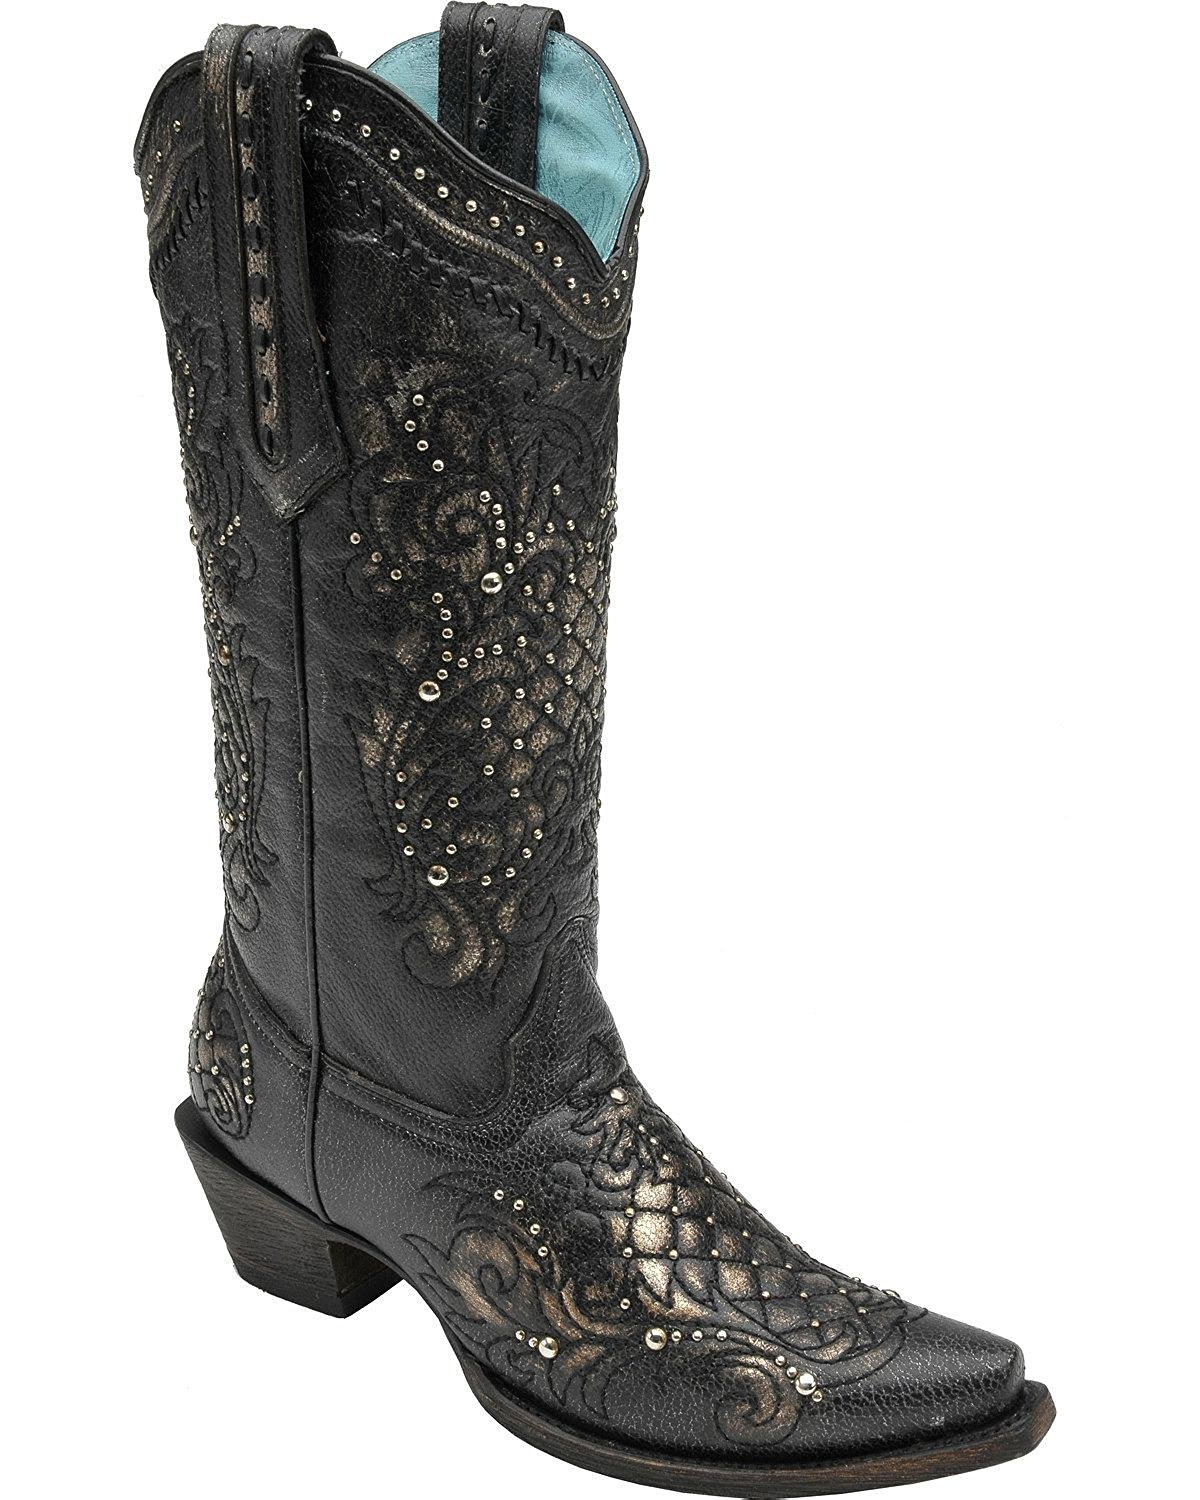 CORRAL Women's Metallic Black Studded Lace Snip Toe Cowgirl Boots C2887 (5 B(M) US)